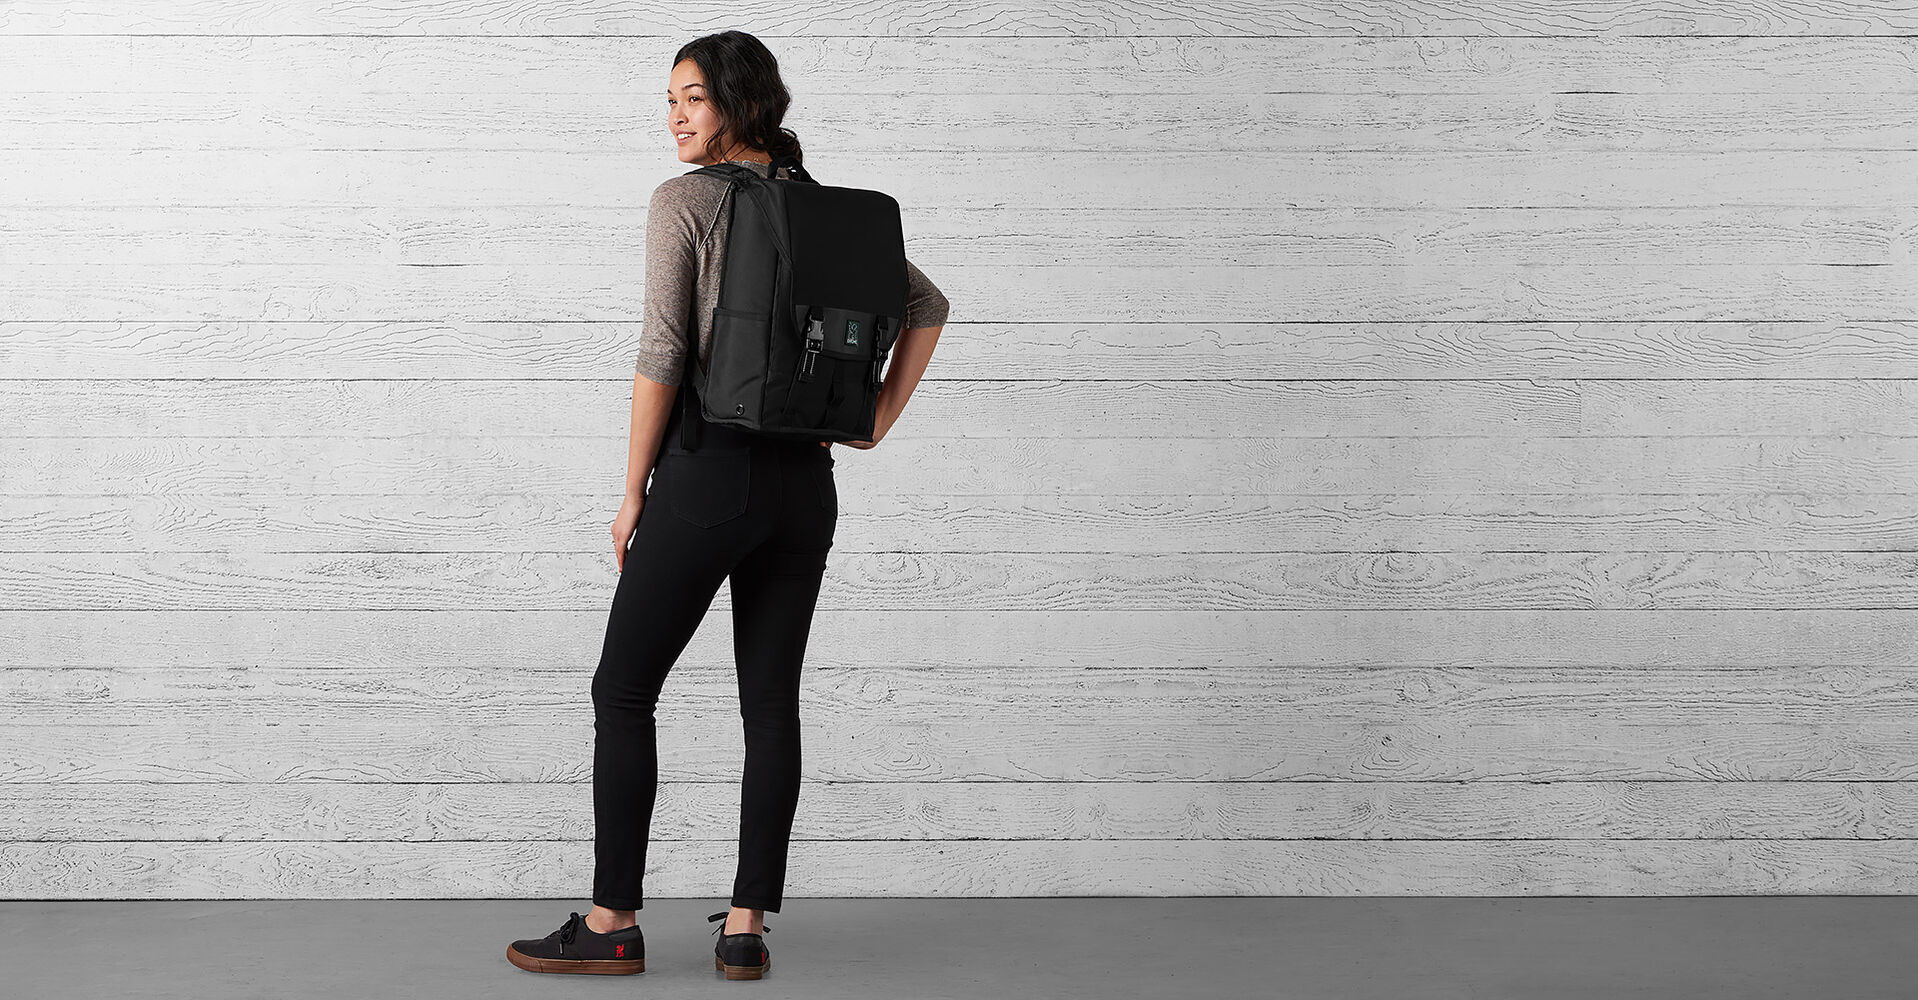 Soma Backpack - Fits laptops up to 15